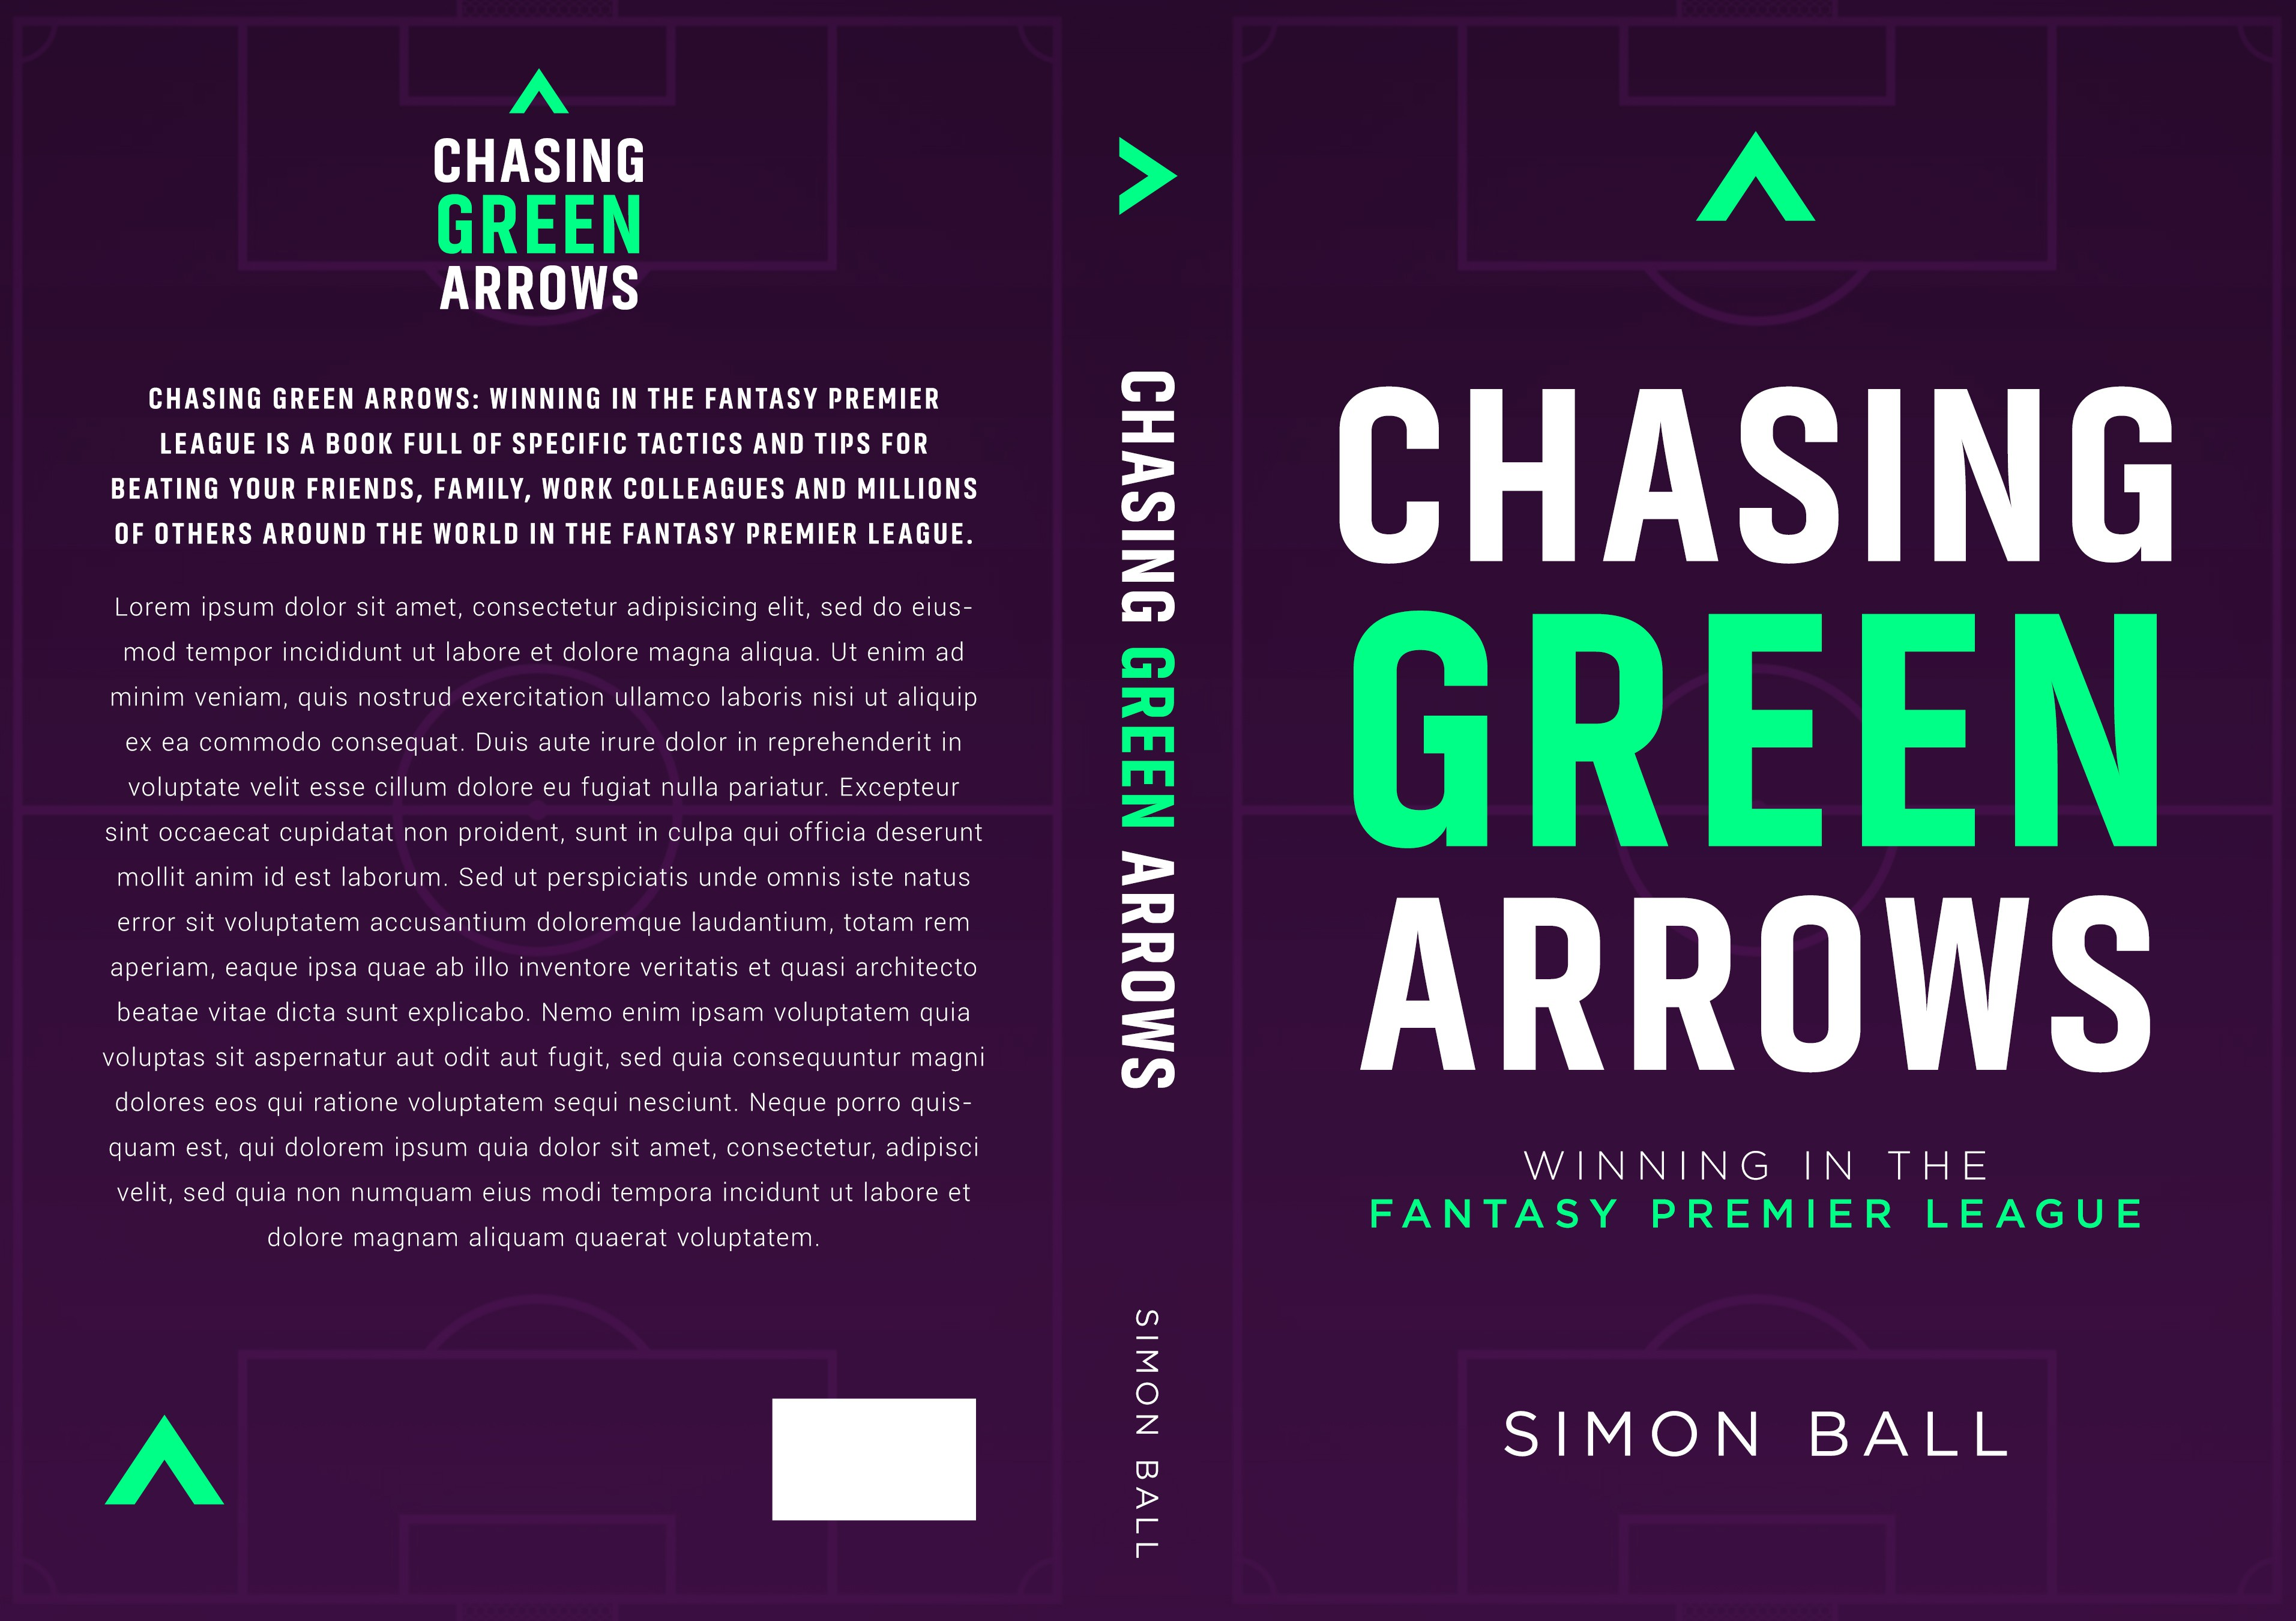 Book Cover for Chasing Green Arrows: Winning in the Fantasy Premier League.